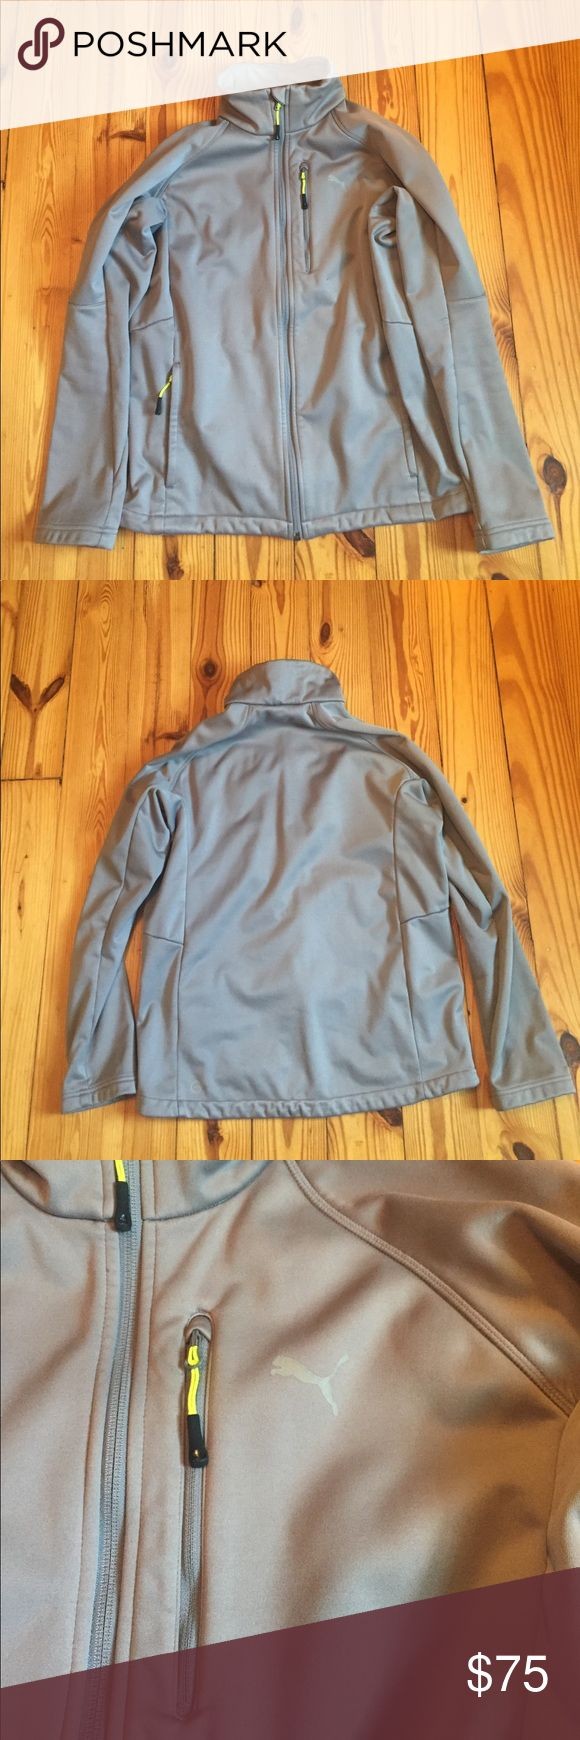 Grey Puma Jacket Jacket is unexpectedly warm and just in general, good quality. On top of the regular two pockets, it features a very handy chest pocket. The size on the jacket is medium and fits like a normal medium. Puma Jackets & Coats Performance Jackets